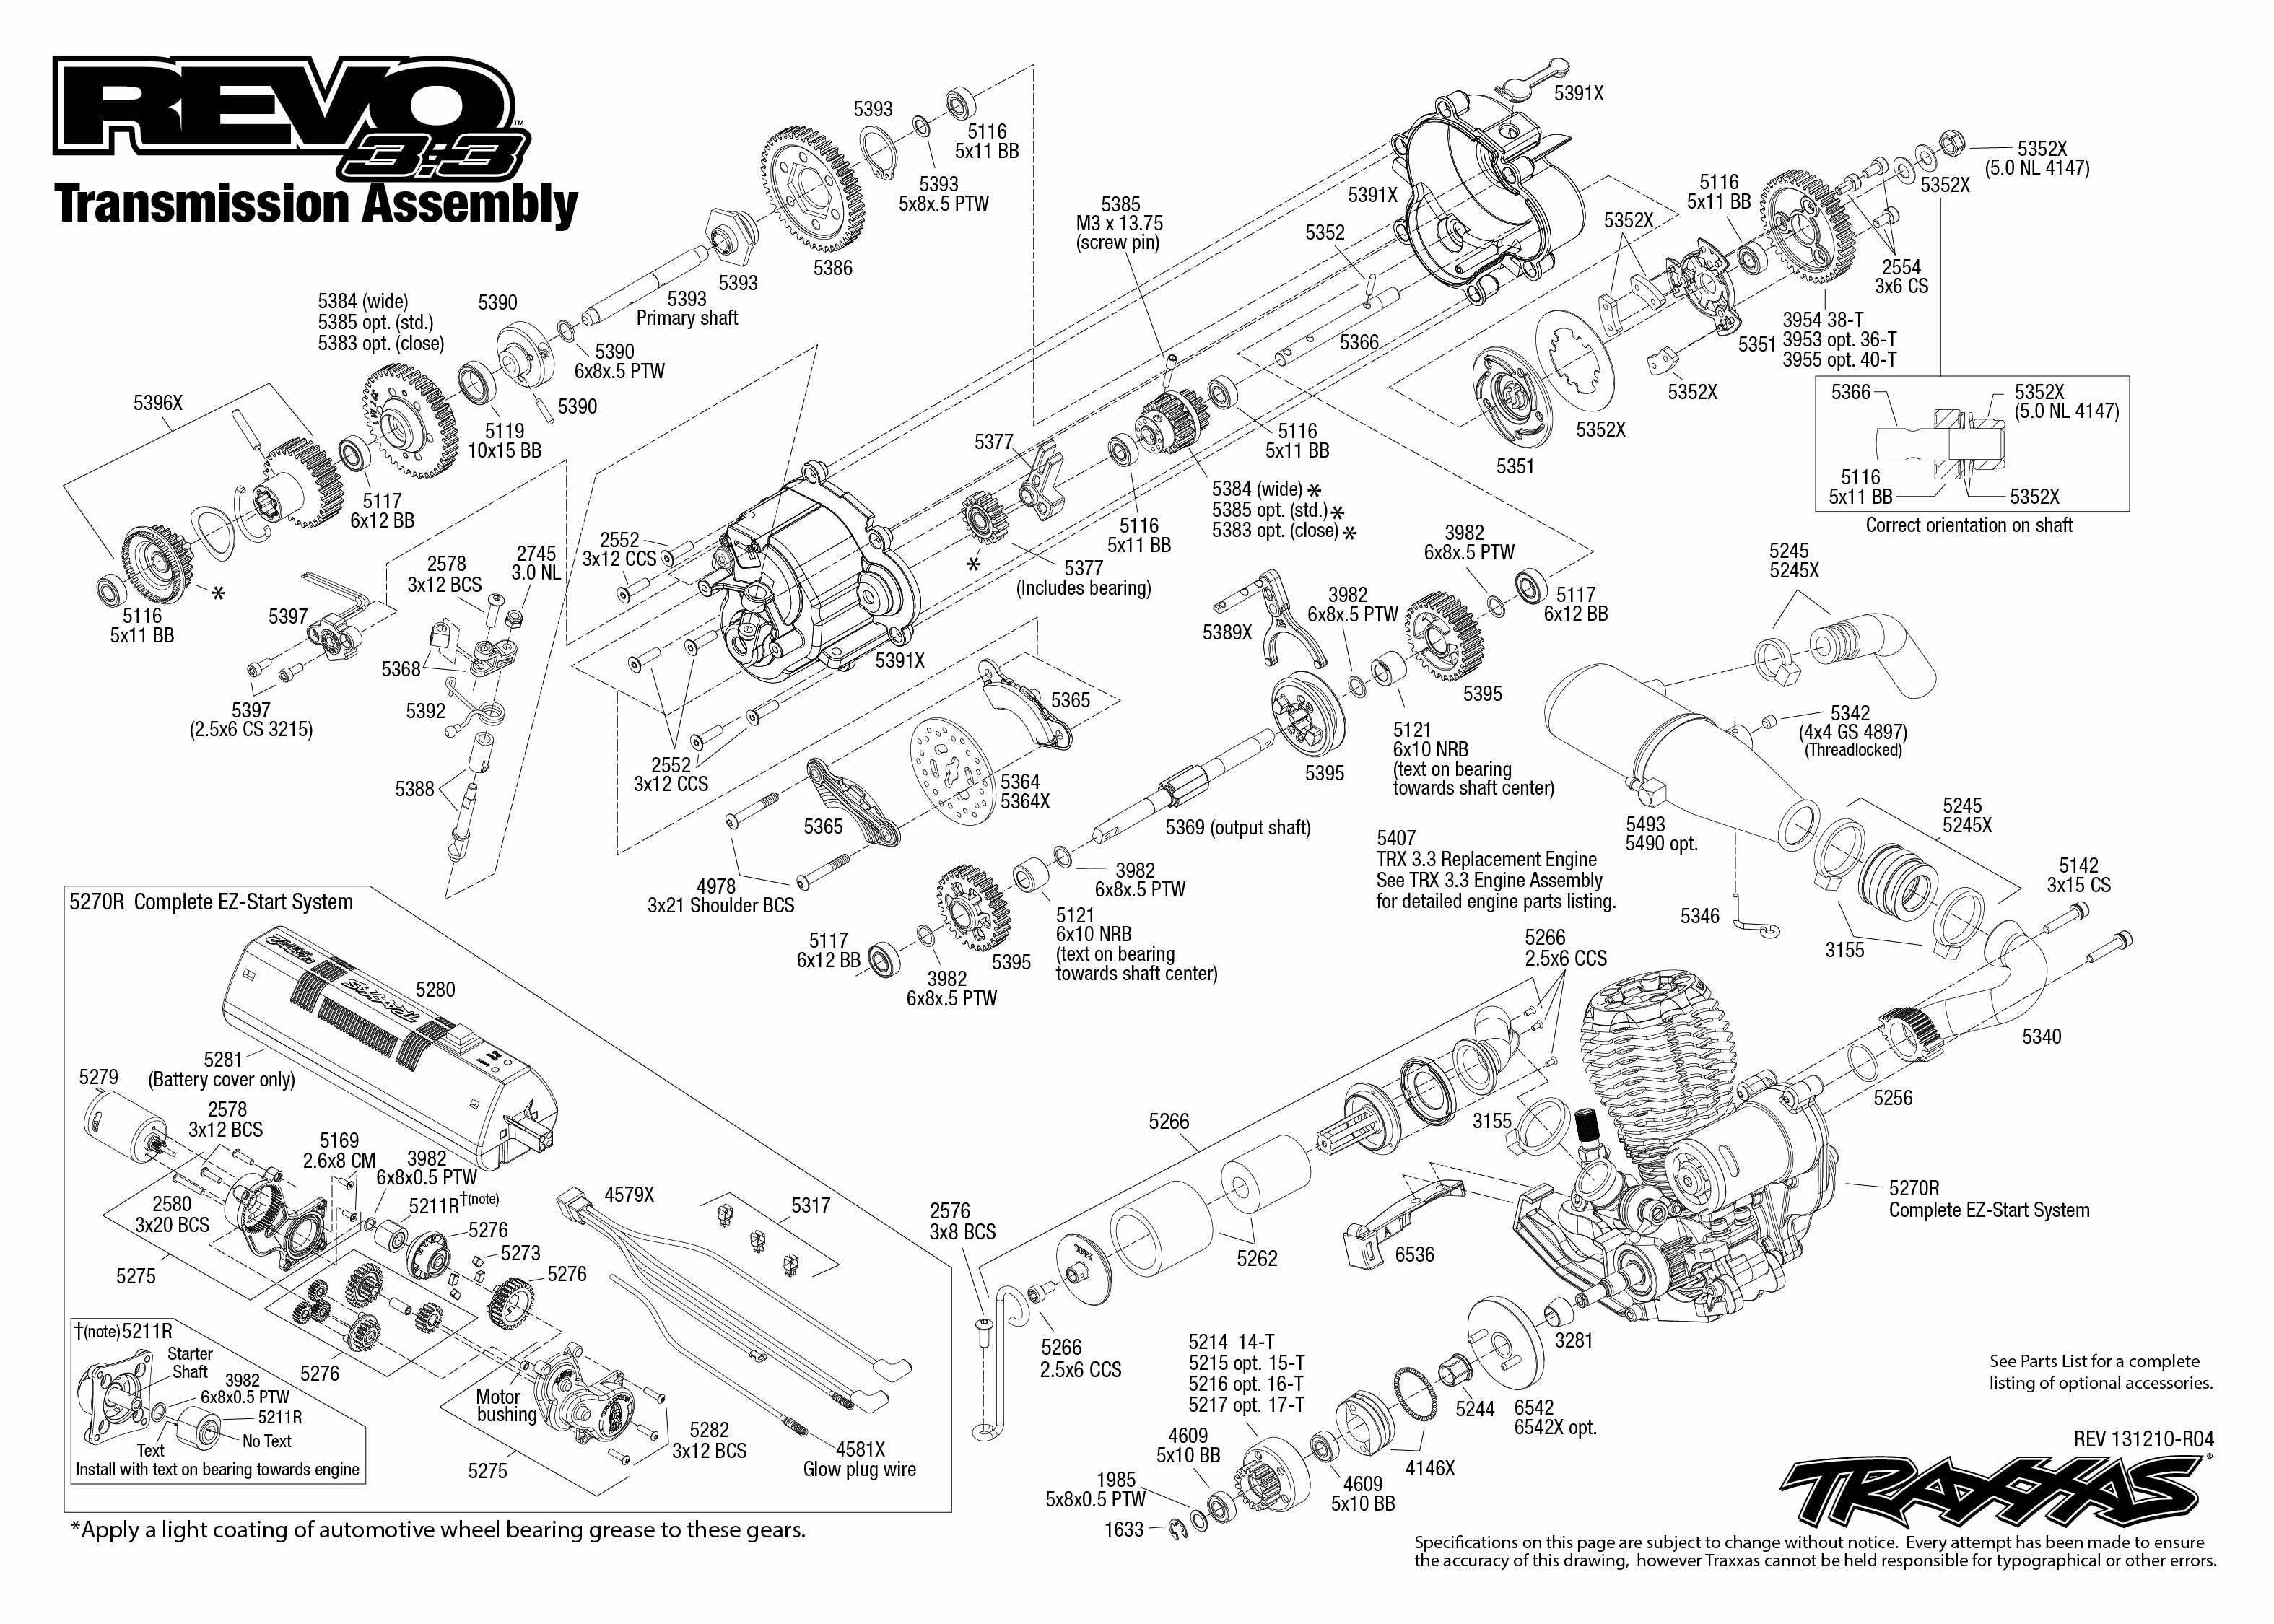 lincoln 3 0 engine diagram 5309 transmission exploded view (revo 3.3, w/ tqi 2.4ghz ... traxxas 3 3 engine diagram